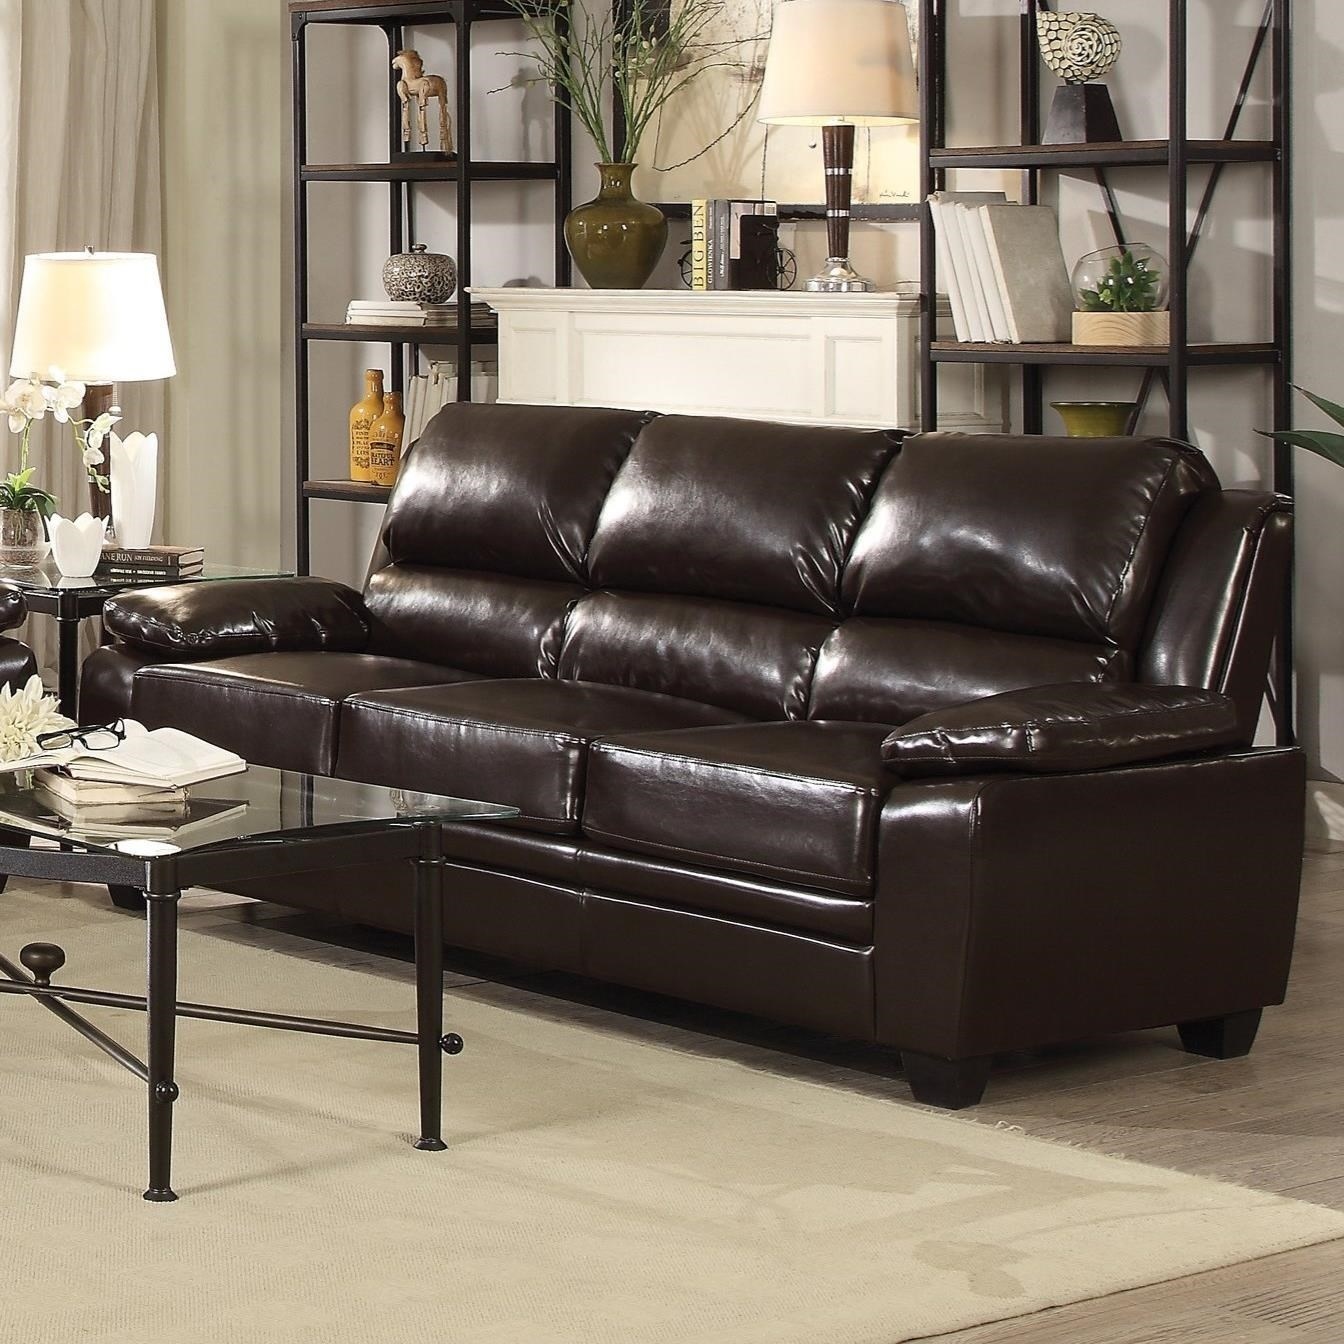 Coaster Gryffin Leatherette Sofa with Pillow Arms Dream